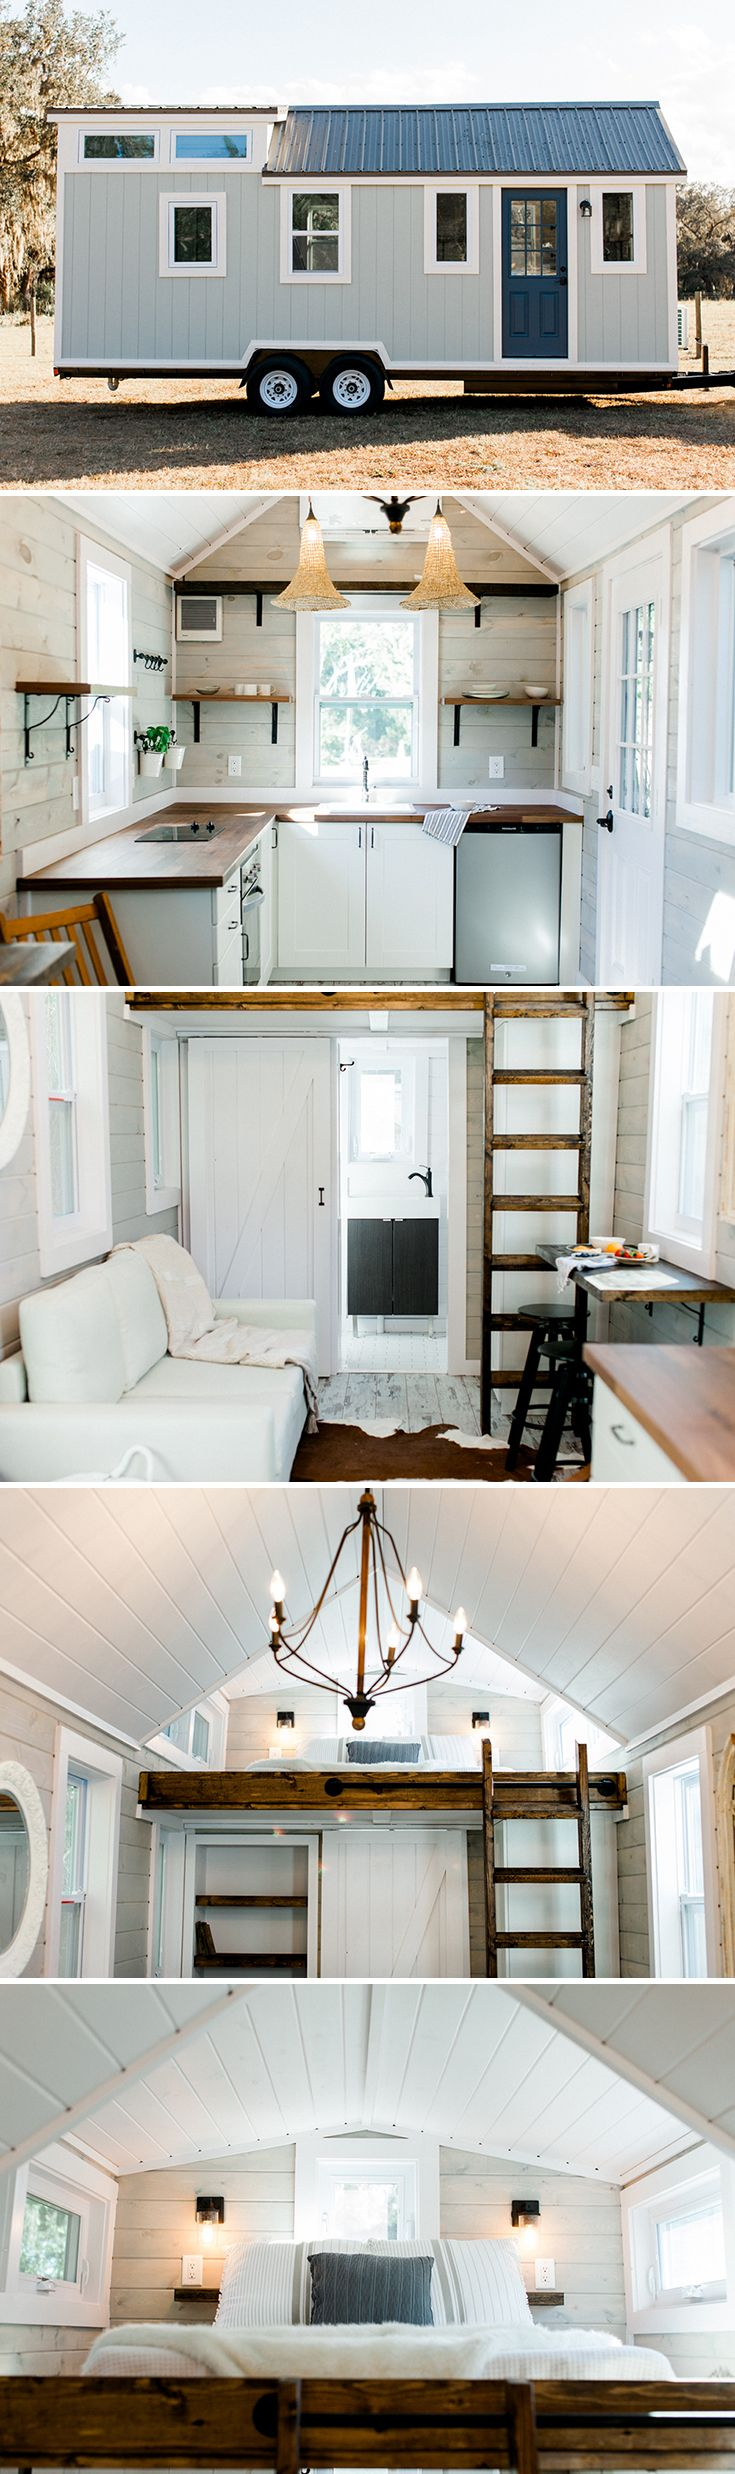 tiny marta by sanctuary tiny homes - Tiny House Trailer Interior